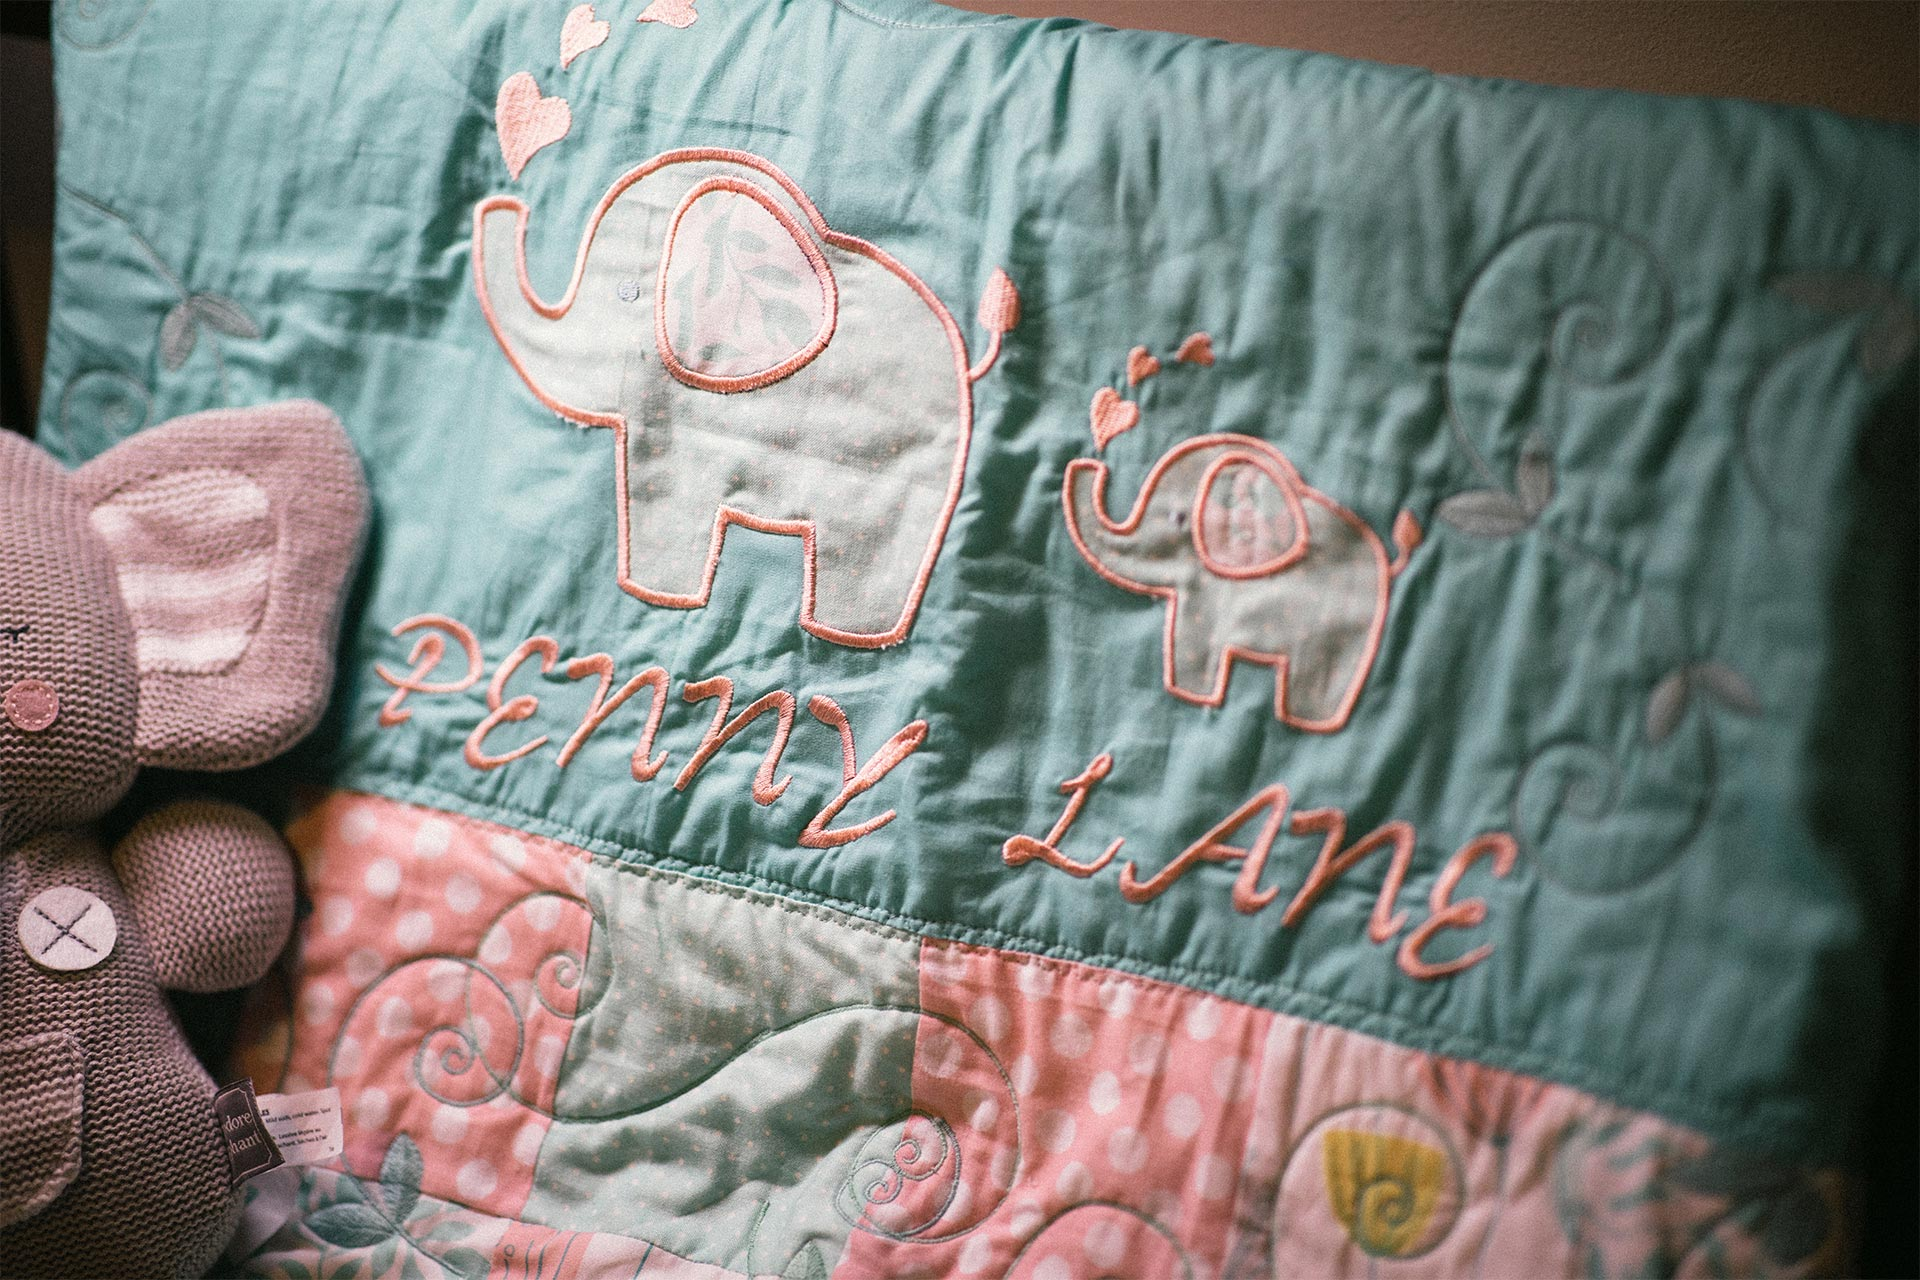 Quilt depicting elephants with name Penny Lane